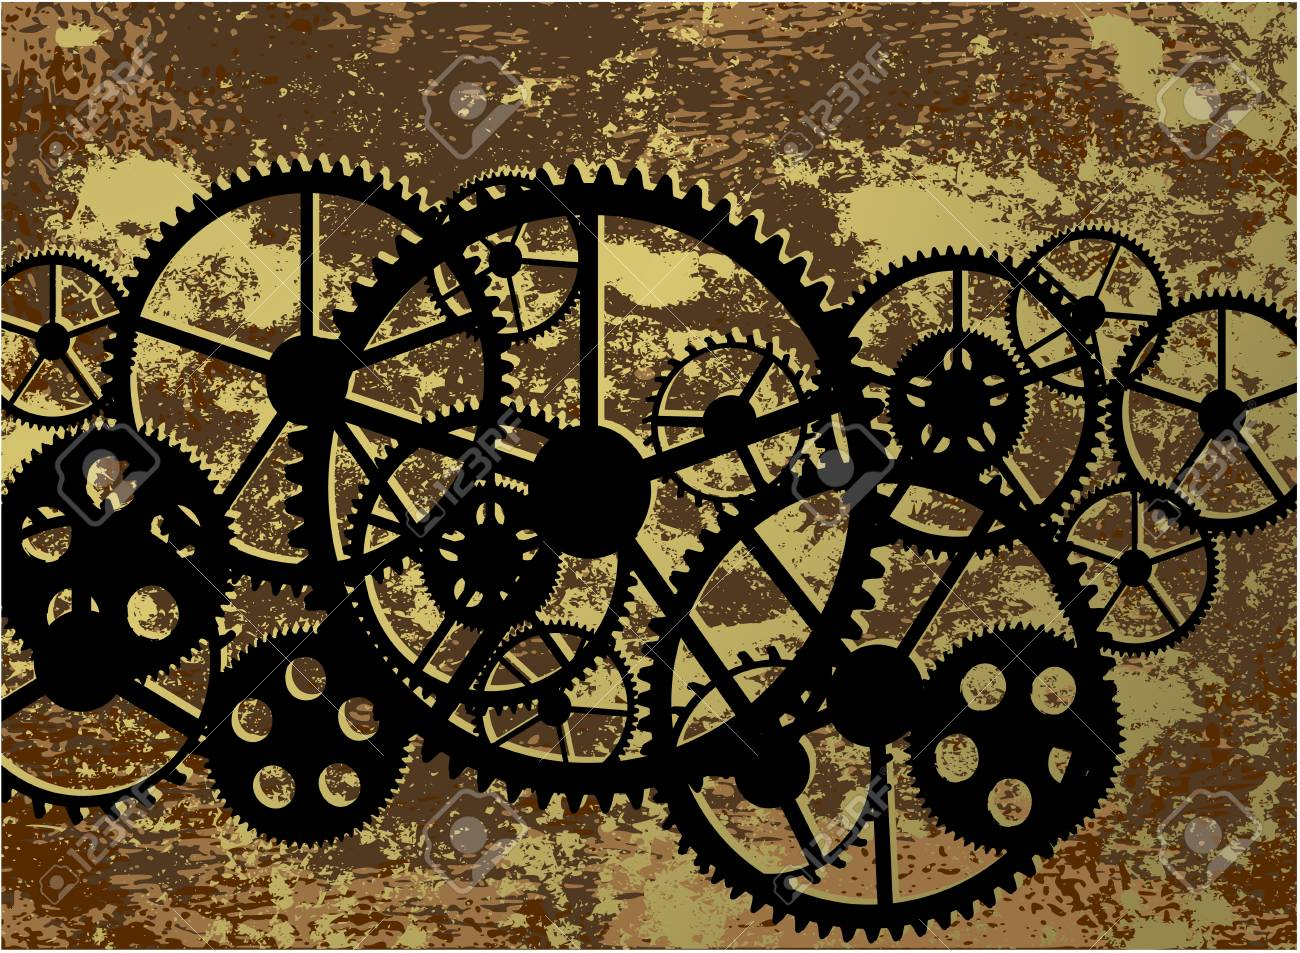 Dirty Background With A Clockwork Illustration Clip Art Royalty Free Cliparts Vectors And Stock Illustration Image 97434850